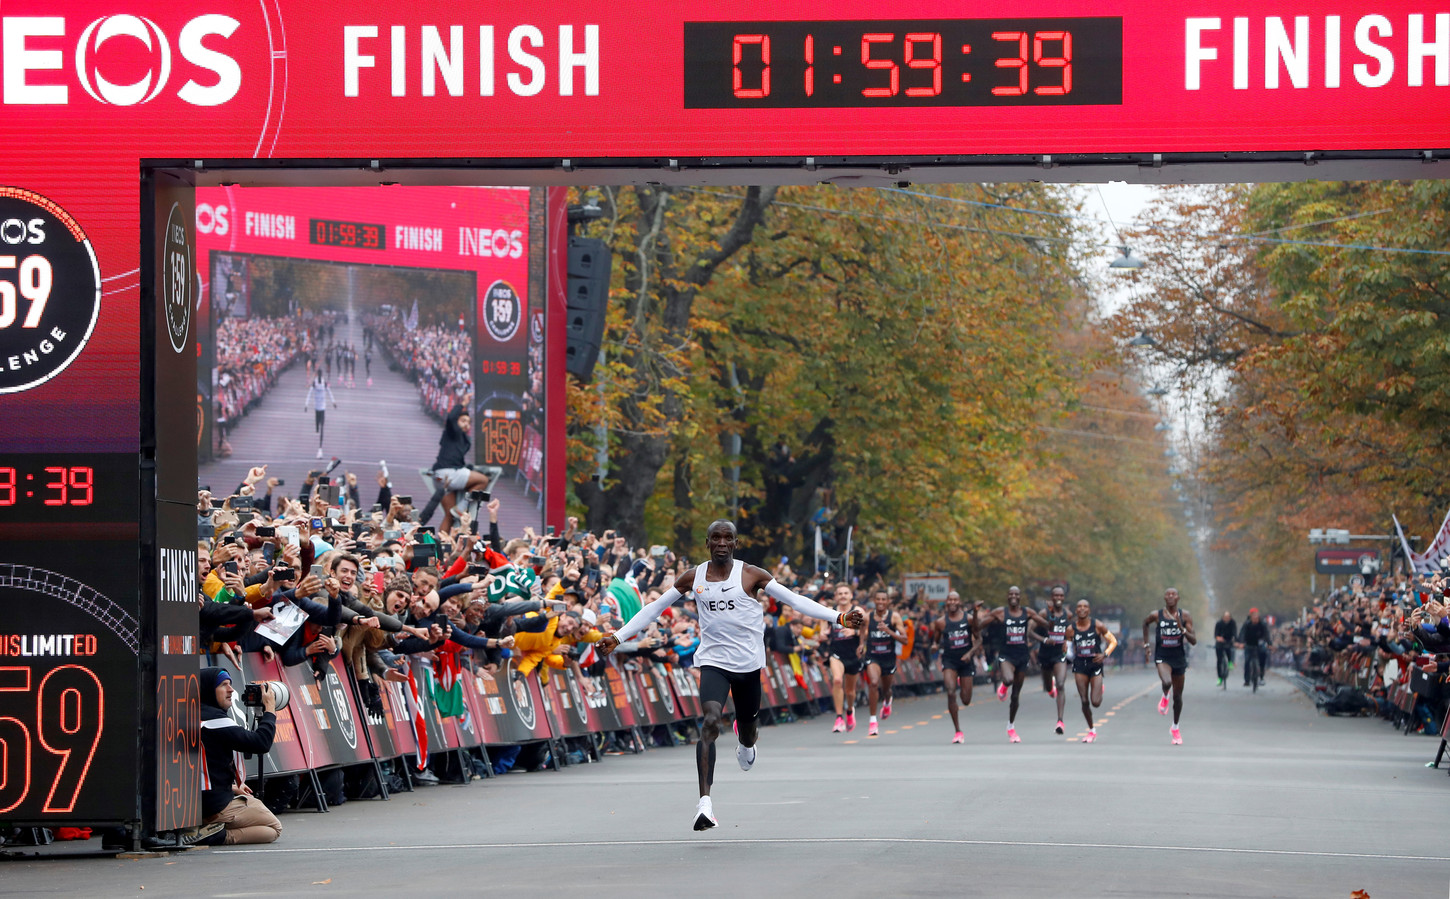 Kenya's Eliud Kipchoge, the marathon world record holder, crosses the finish line during his attempt to run a marathon in under two hours in Vienna, Austria, October 12, 2019. REUTERS/Leonhard Foeger